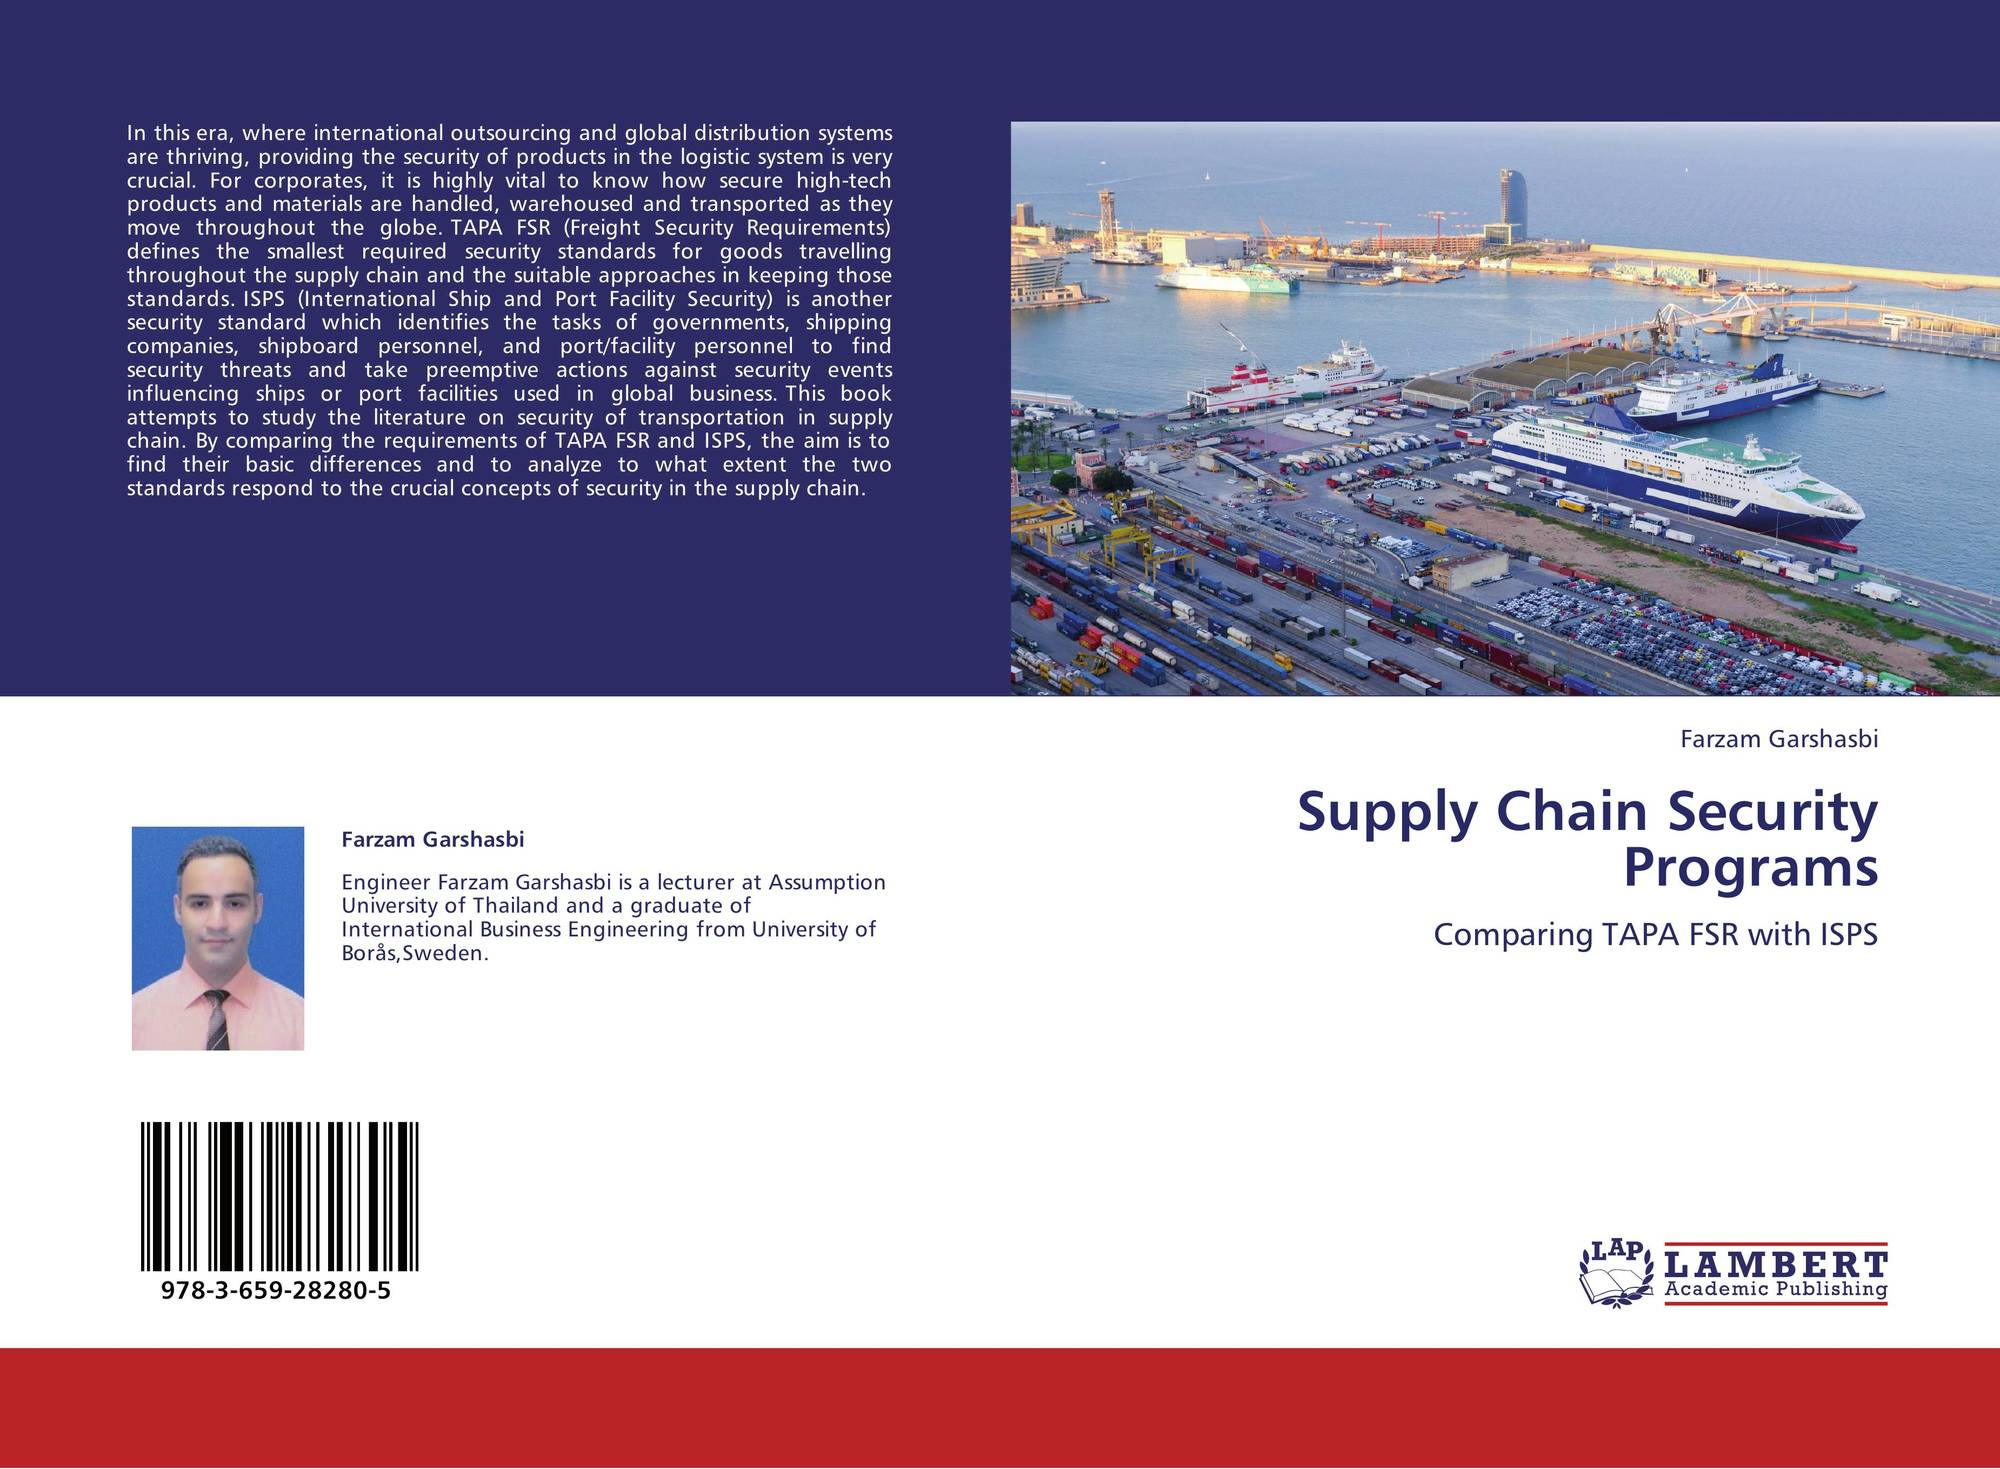 supply chain security programs The shipper's role in the air cargo secure supply chain the scenarios below illustrate changes to air cargo supply chain security coming into force on october 17, 2016.